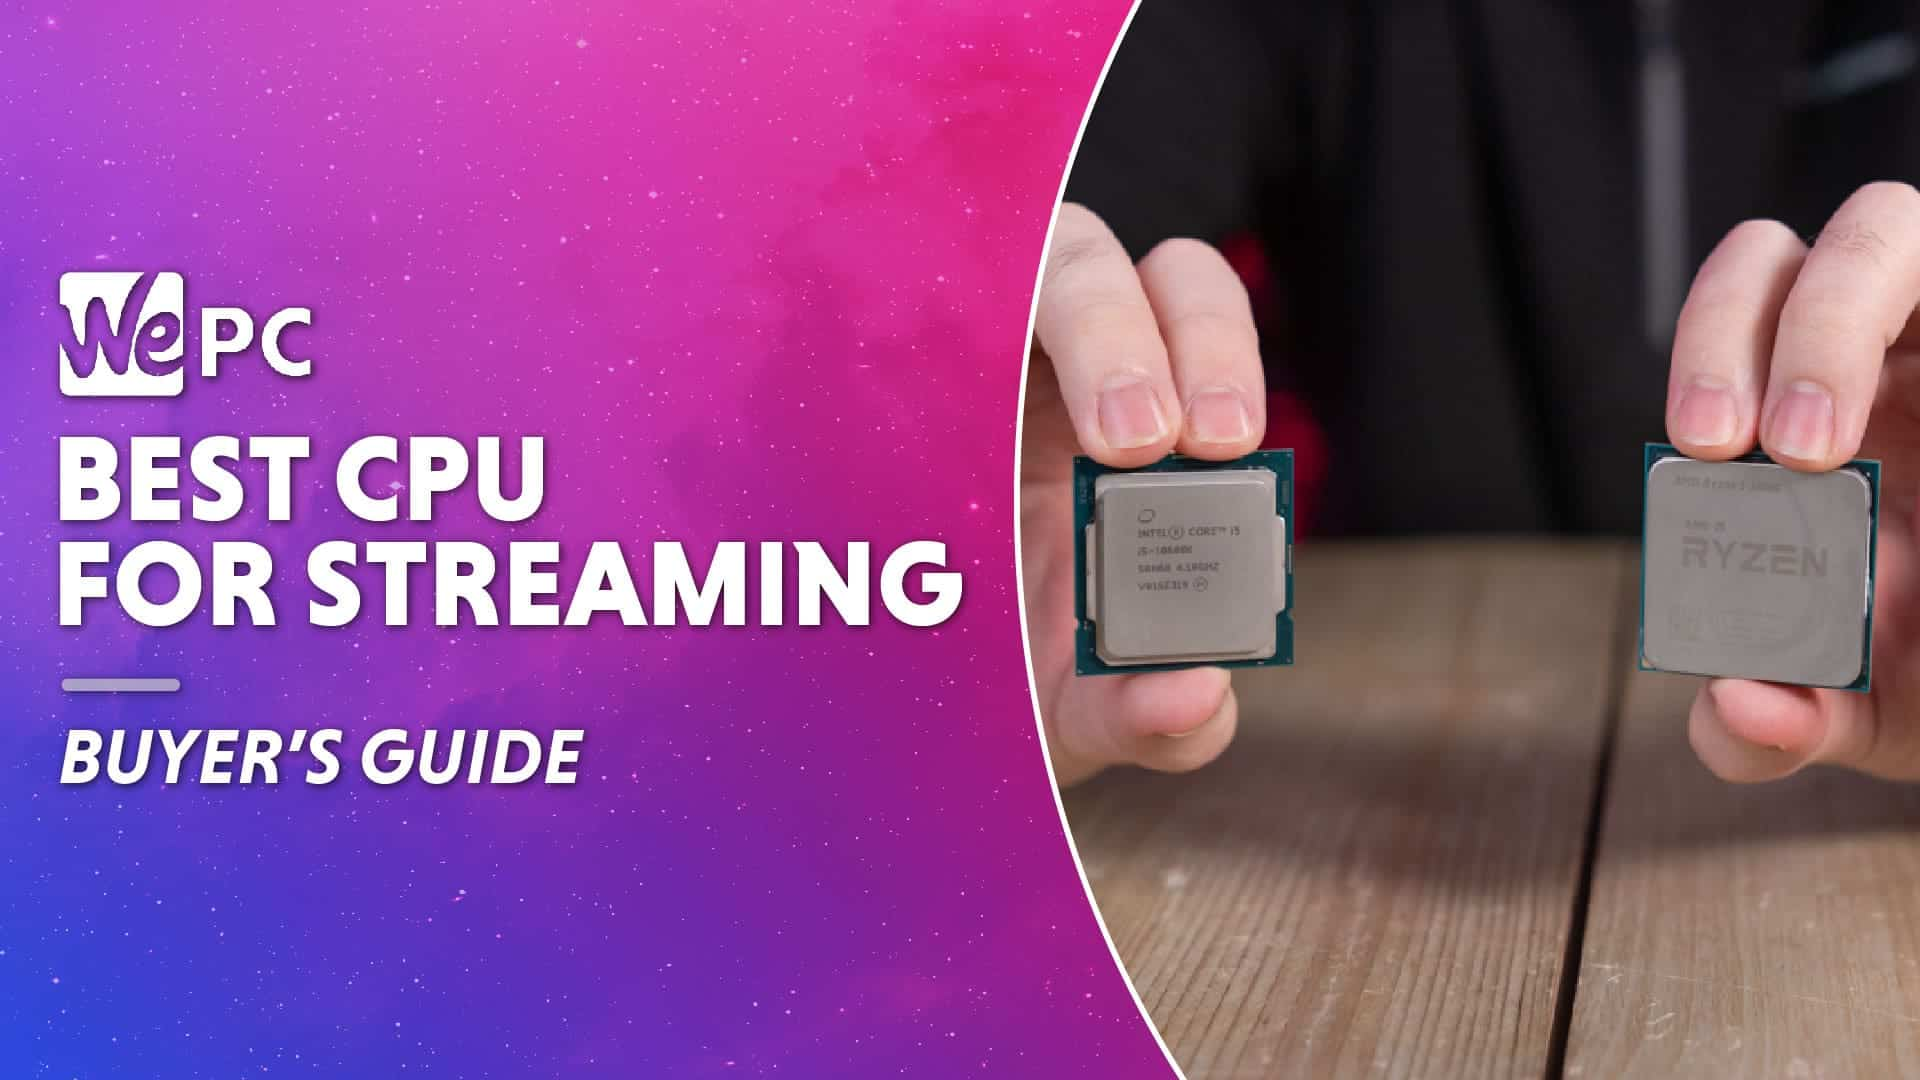 WEPC Best CPU for streaming Featured image 01